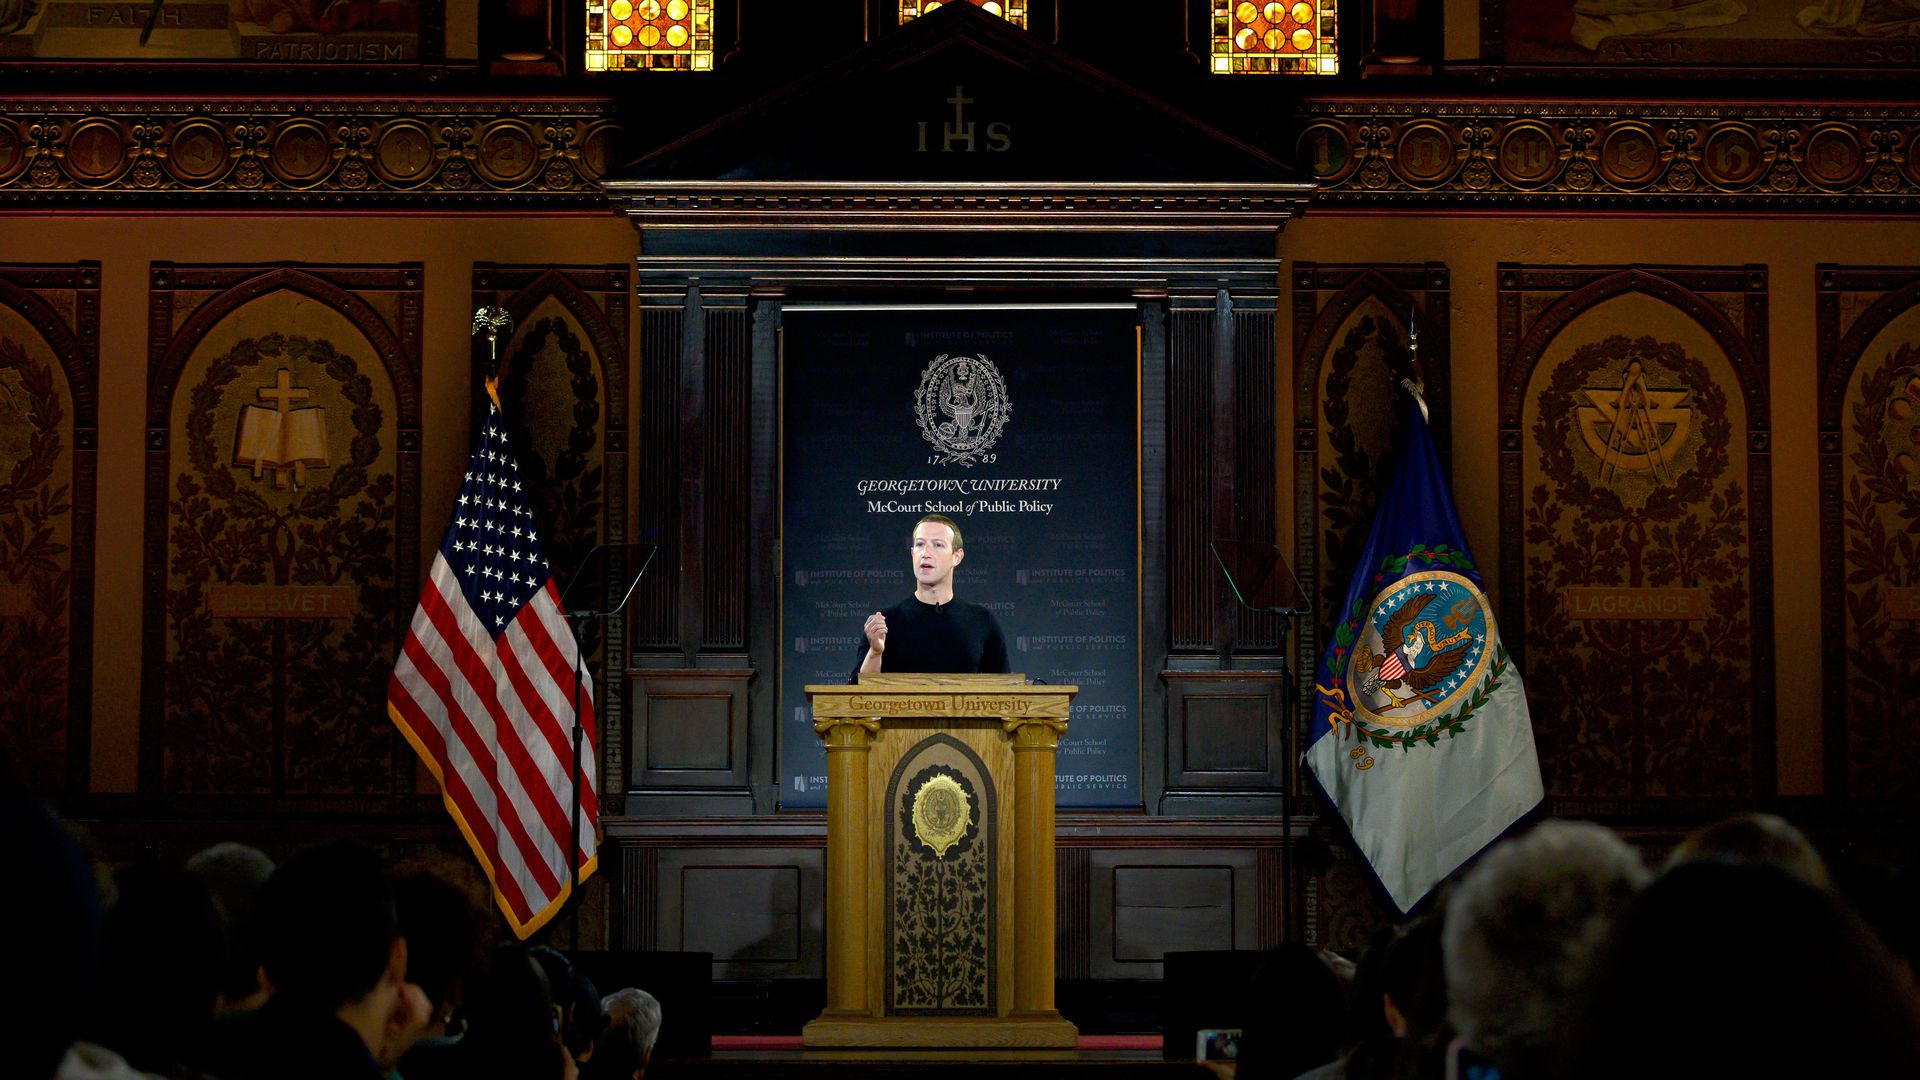 Mark Zuckerberg speaking to students at Georgetown